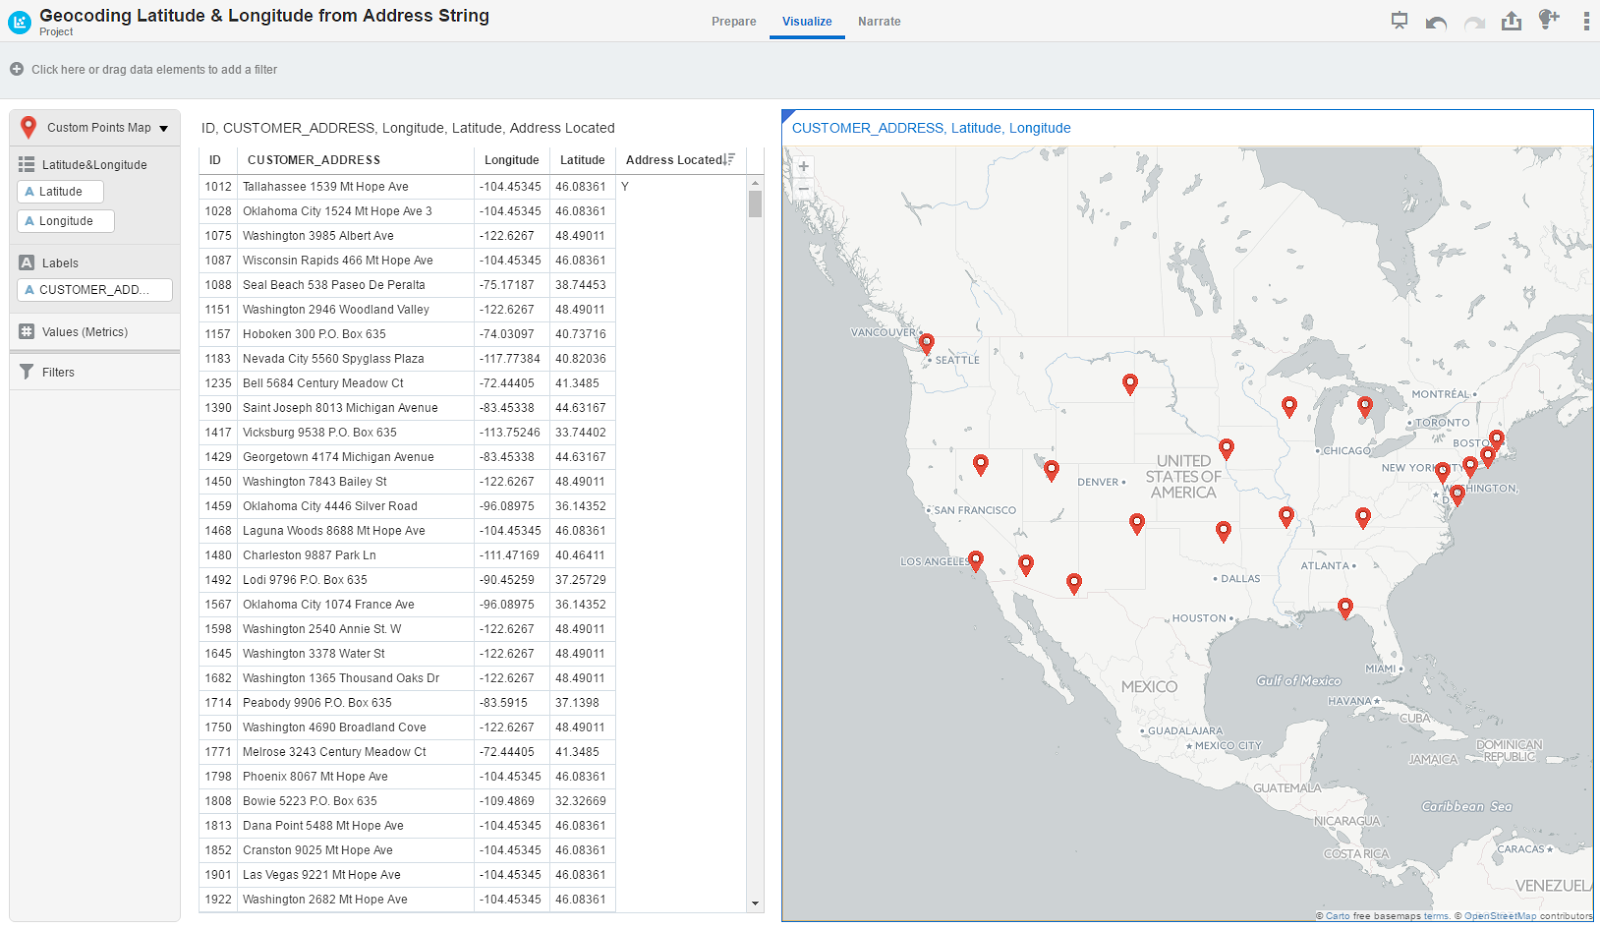 Customize Your Geocode Data with Oracle Data Visualization ... on geodesic map, cartogram map, globe map, longitude map, germany map, google map, geochronology map, mobile map, casino map, hospital map, area code directory map,